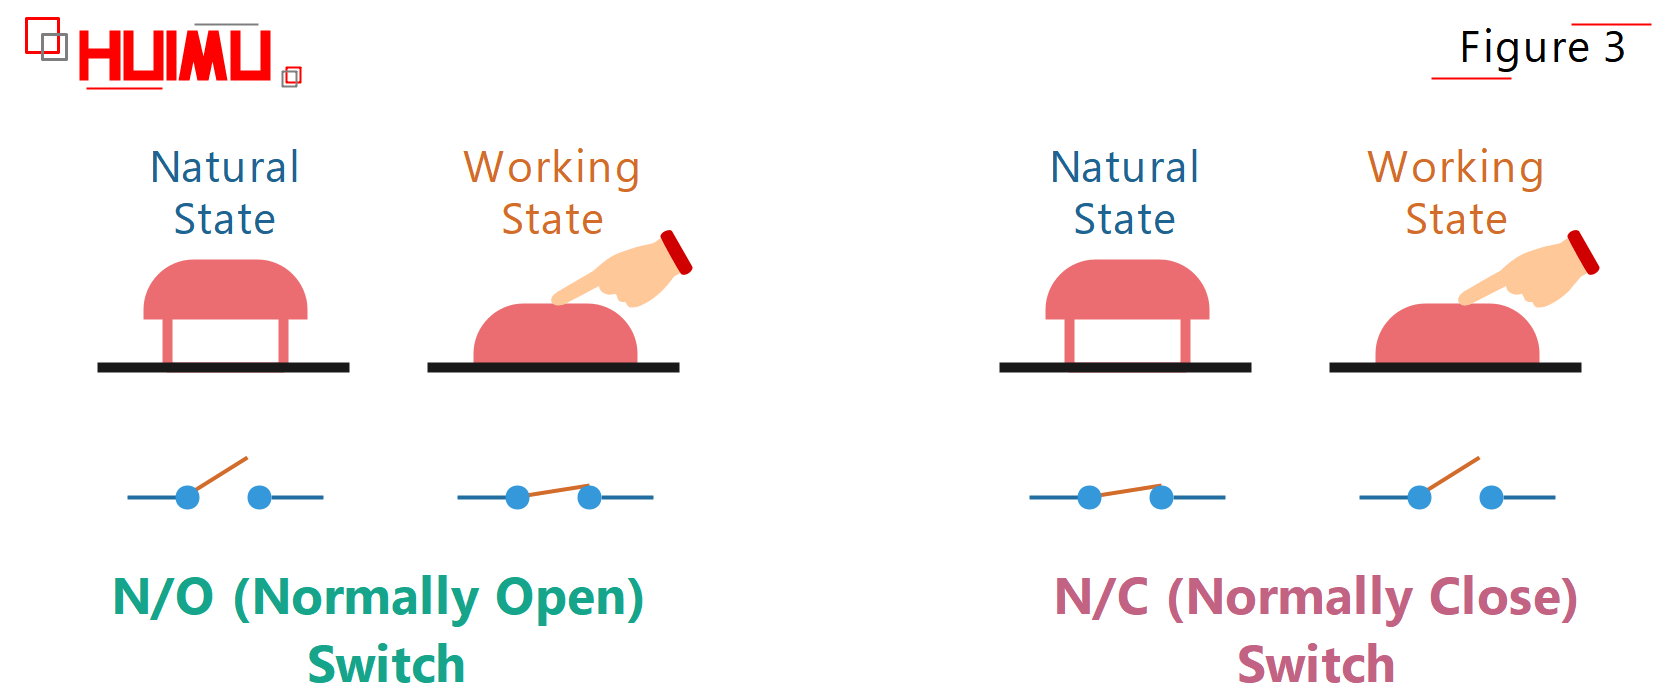 What is normally opne (NO, N/O) and normally close (NC, N/C) ?